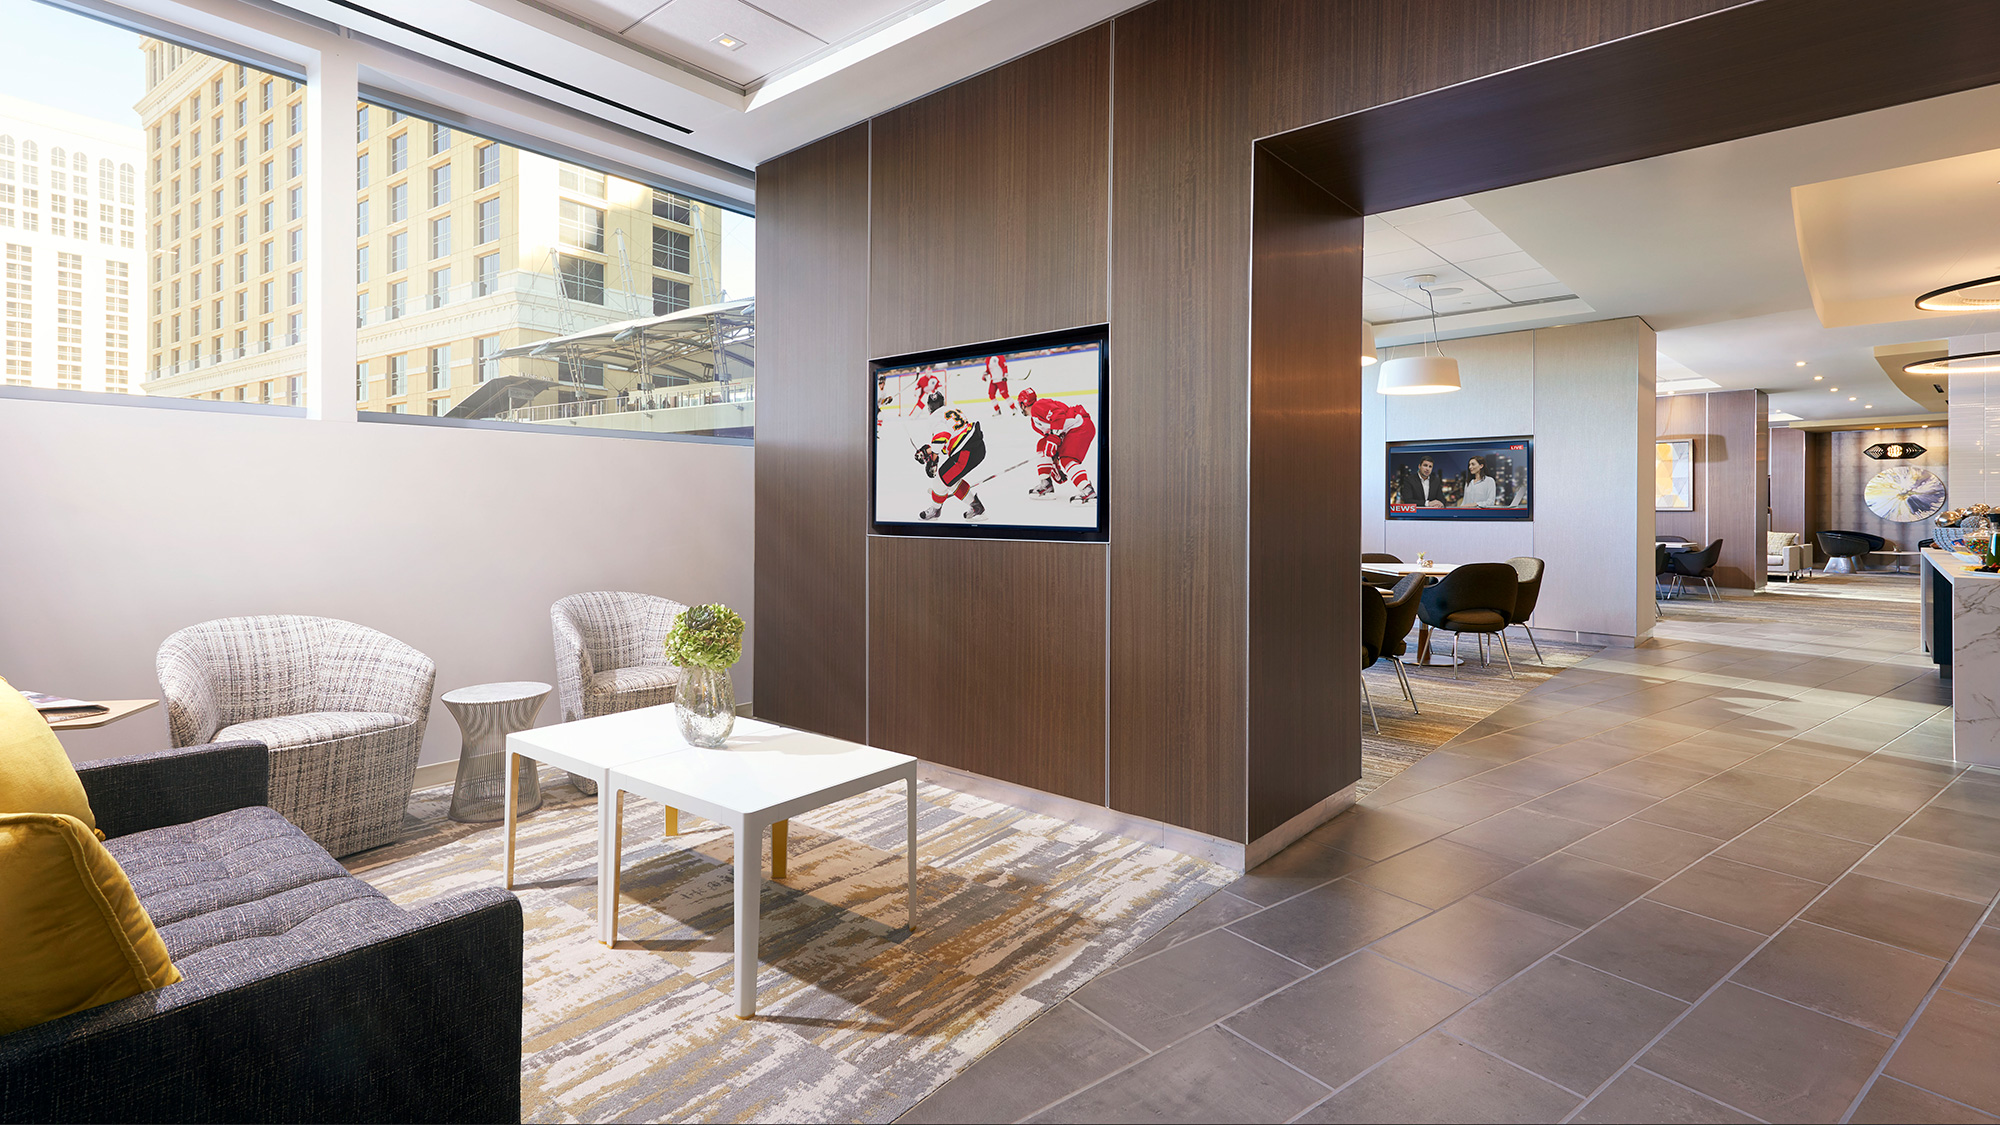 Lush furnishings and interiors welcome guests to the Vdara Club Lounge in Las Vegas.